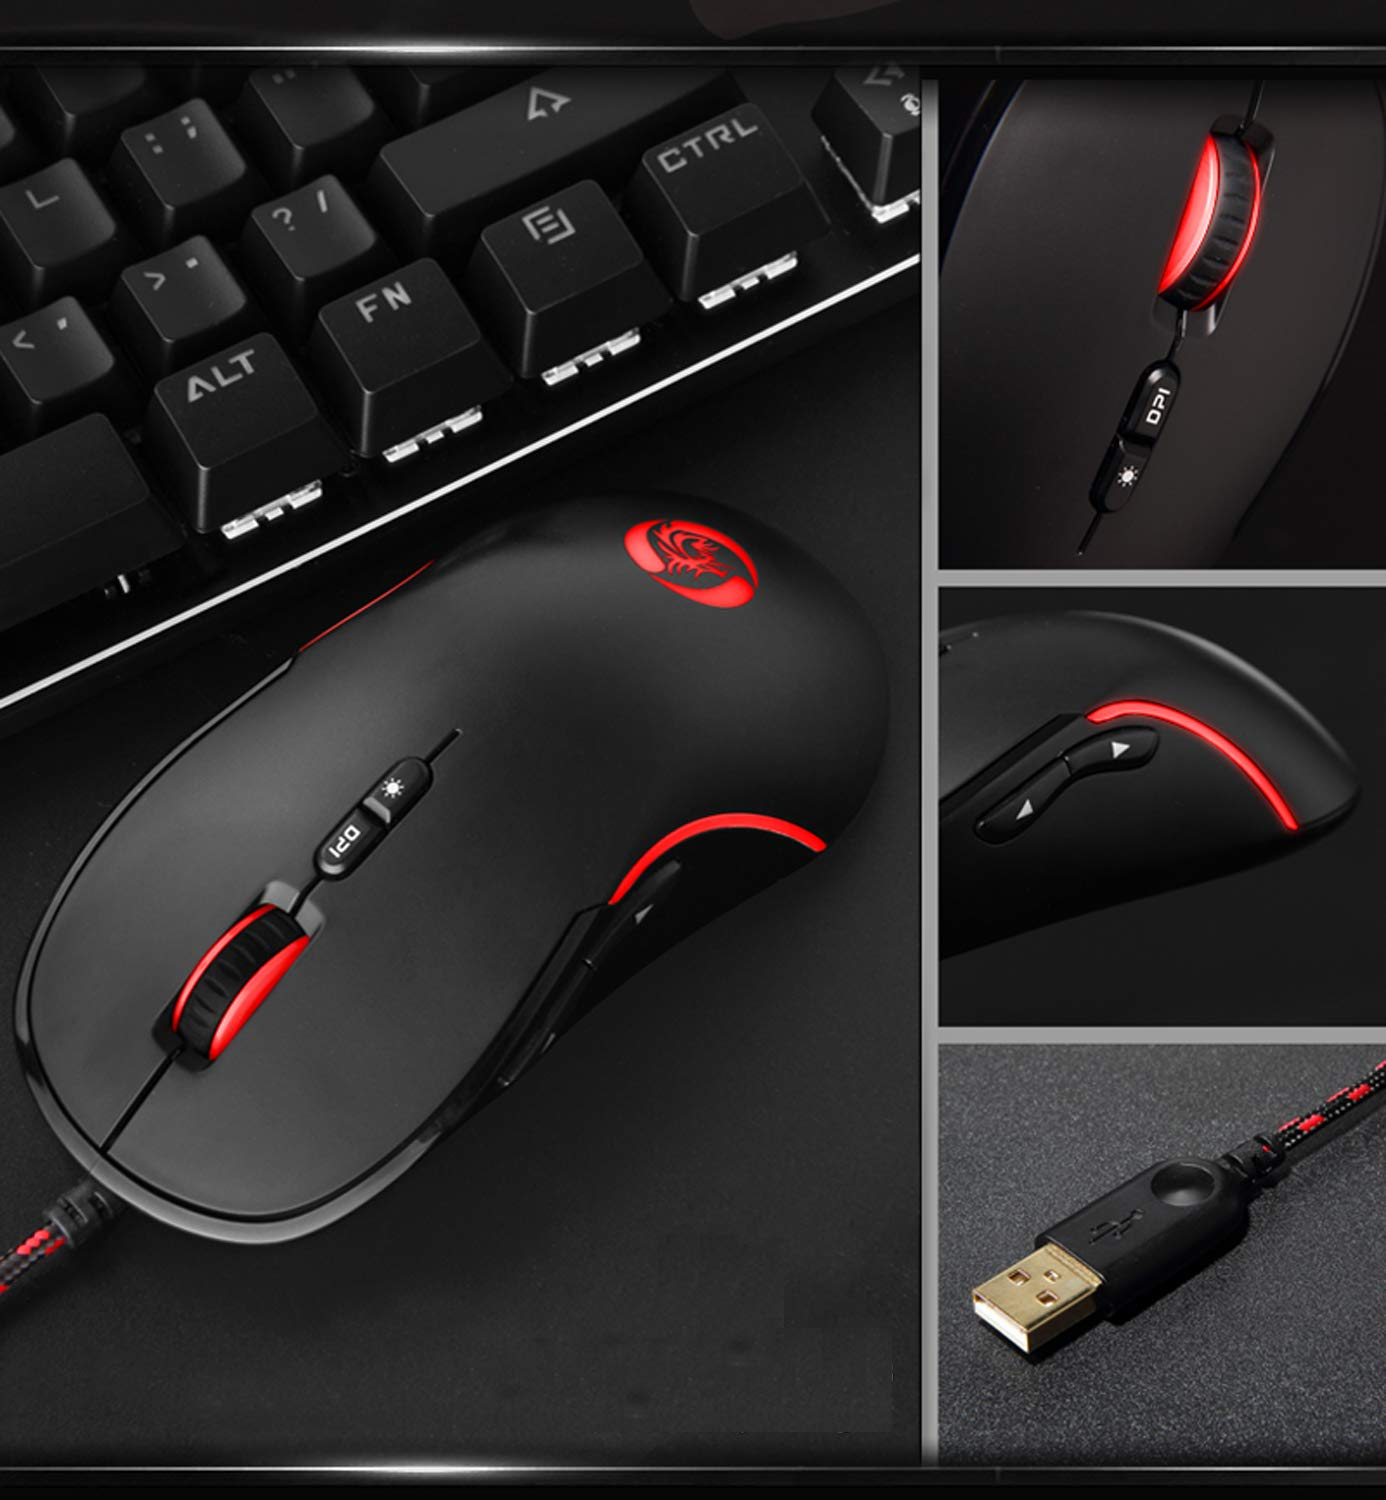 LILONG Gaming Mouse Wired [Metal Base] [Breathing Light] Ergonomic Game USB Computer Mice RGB Gamer Desktop Laptop PC Gaming Mouse, 7 Buttons for Windows 7/8/10/XP Vista Linux, Optical Sensor PMW3050